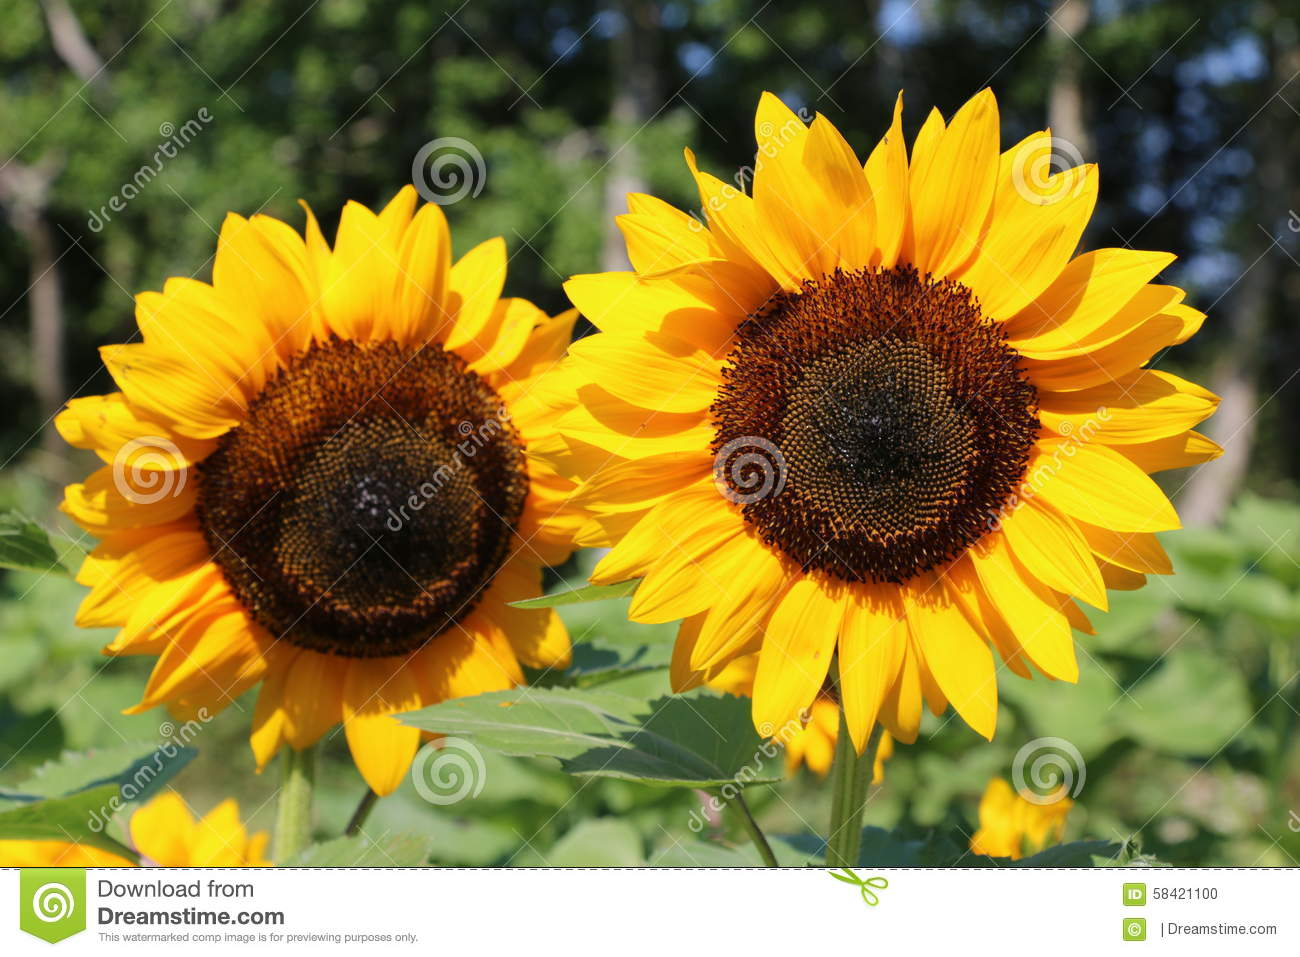 Download Sunflowers stock photo. Image of sunflowers, field, plants - 58421100